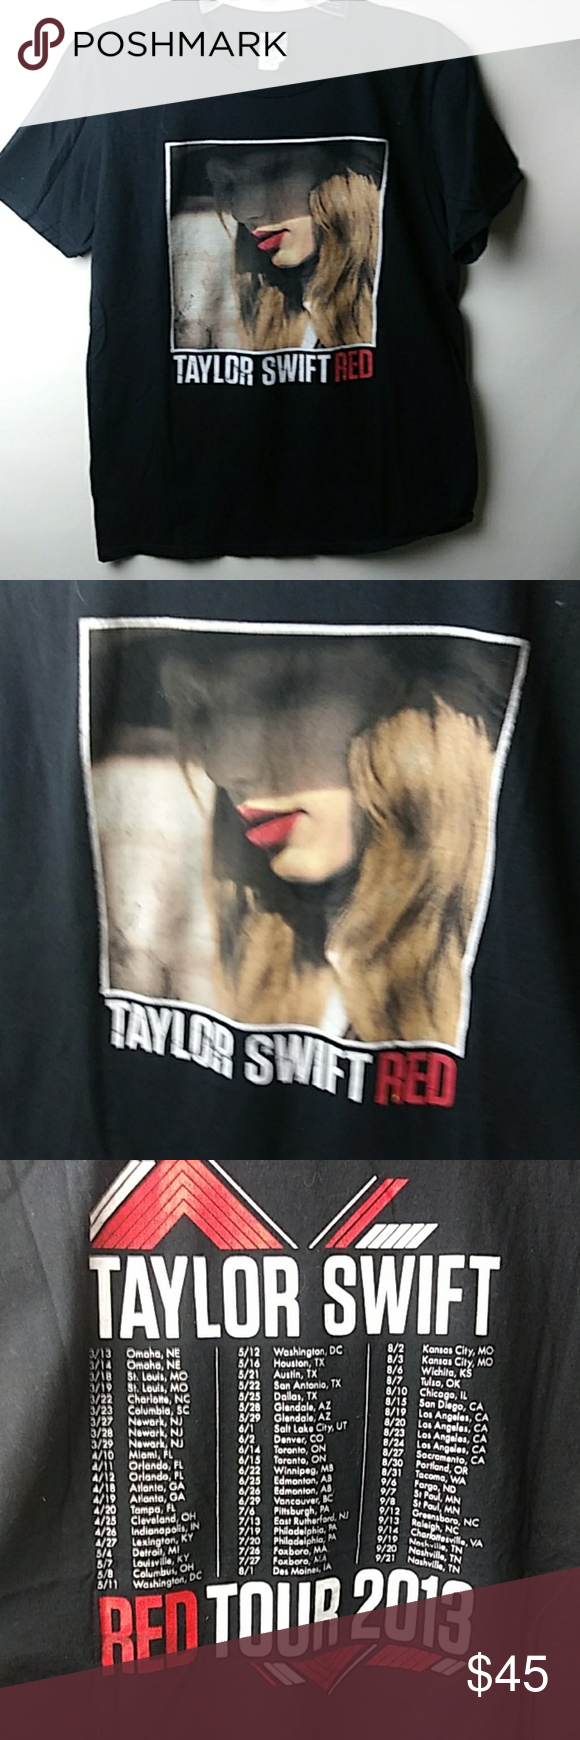 TAYLOR SWIFT RED TOUR T,SHIRT Taylor Swift concert Tour. T,Shirt Tailor SwiftRed tour Concert Tee Tops Tees - Short Sleeve #countryconcertoutfit